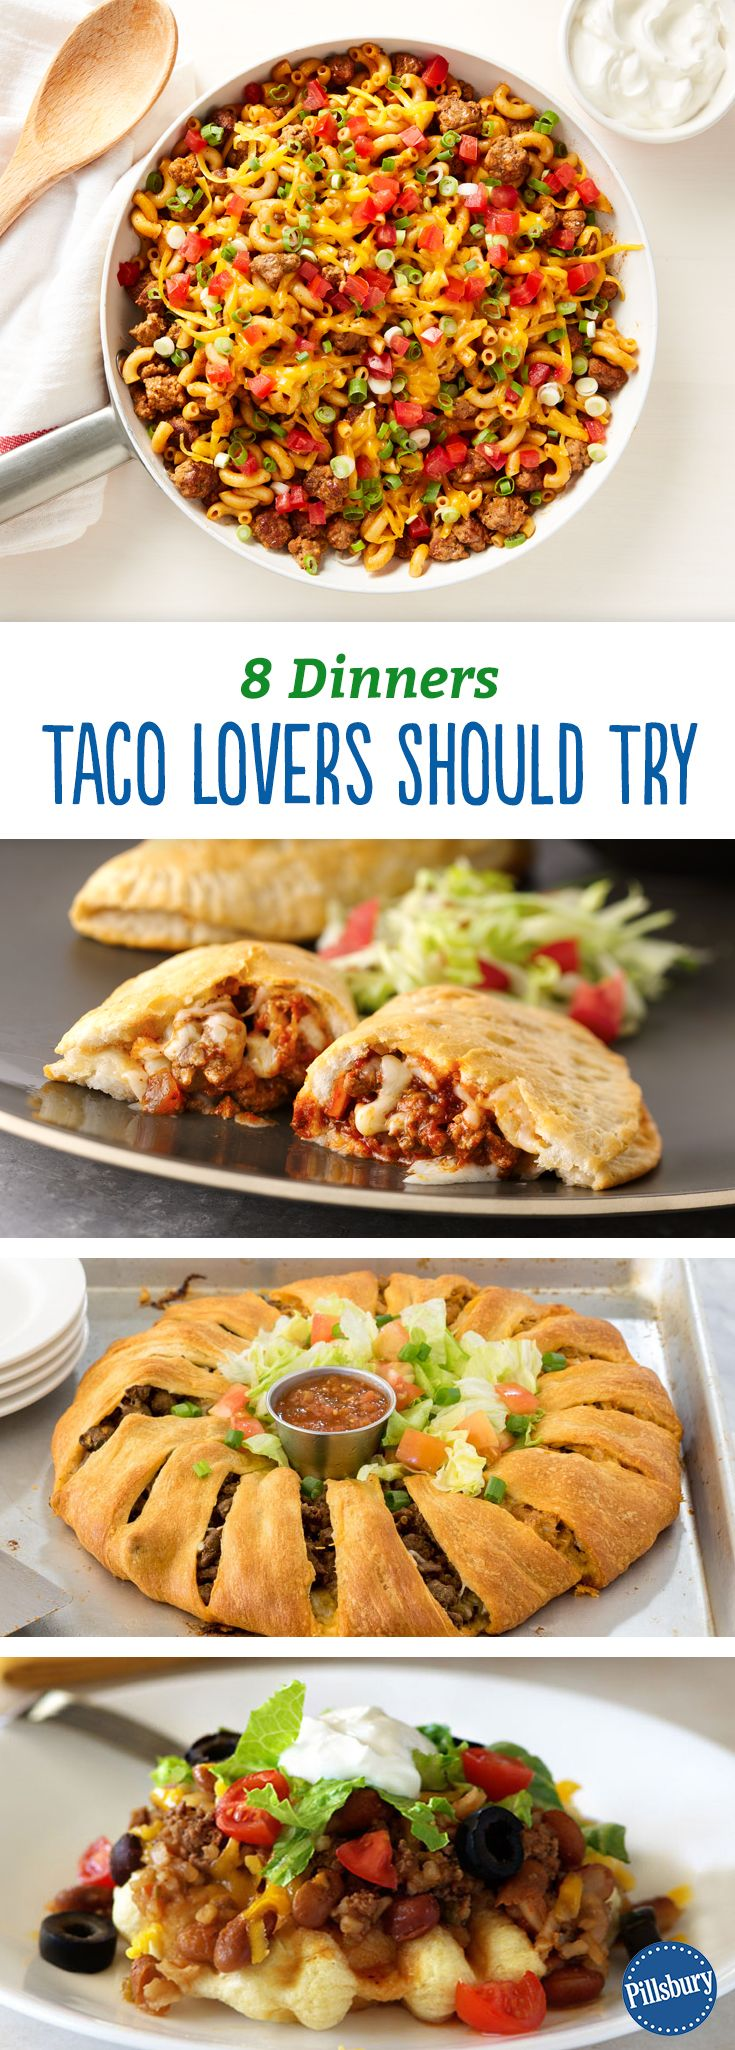 8 Dinners Taco Lovers Should Try: Obsessed with tacos? Then these recipes are for you! From casseroles to crescent rings, we have a dinner for every taco fan.